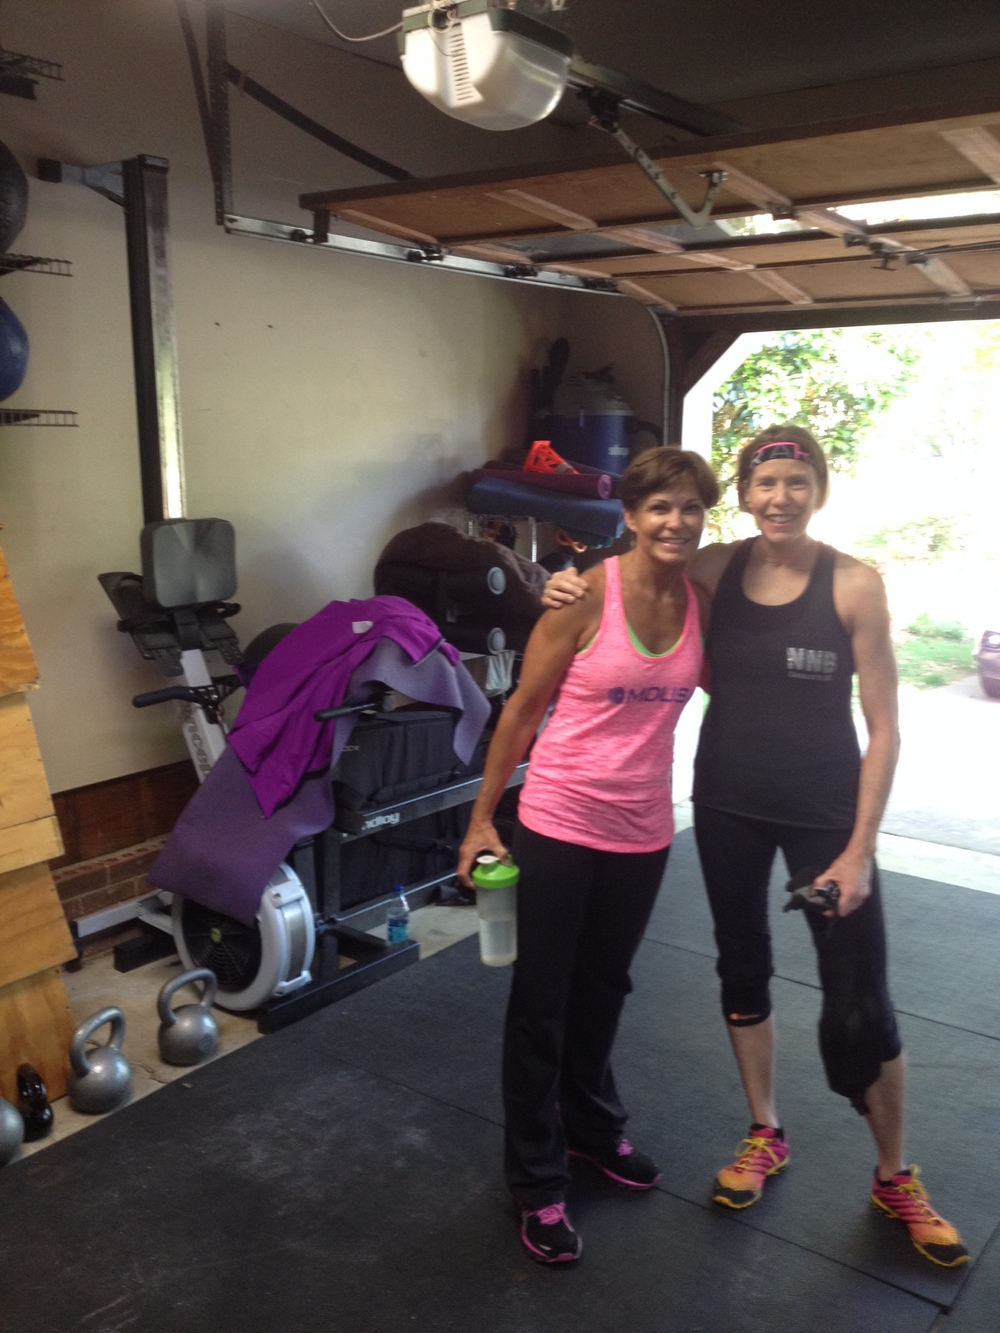 Mickie and Martha, a team of hard-working fit women.